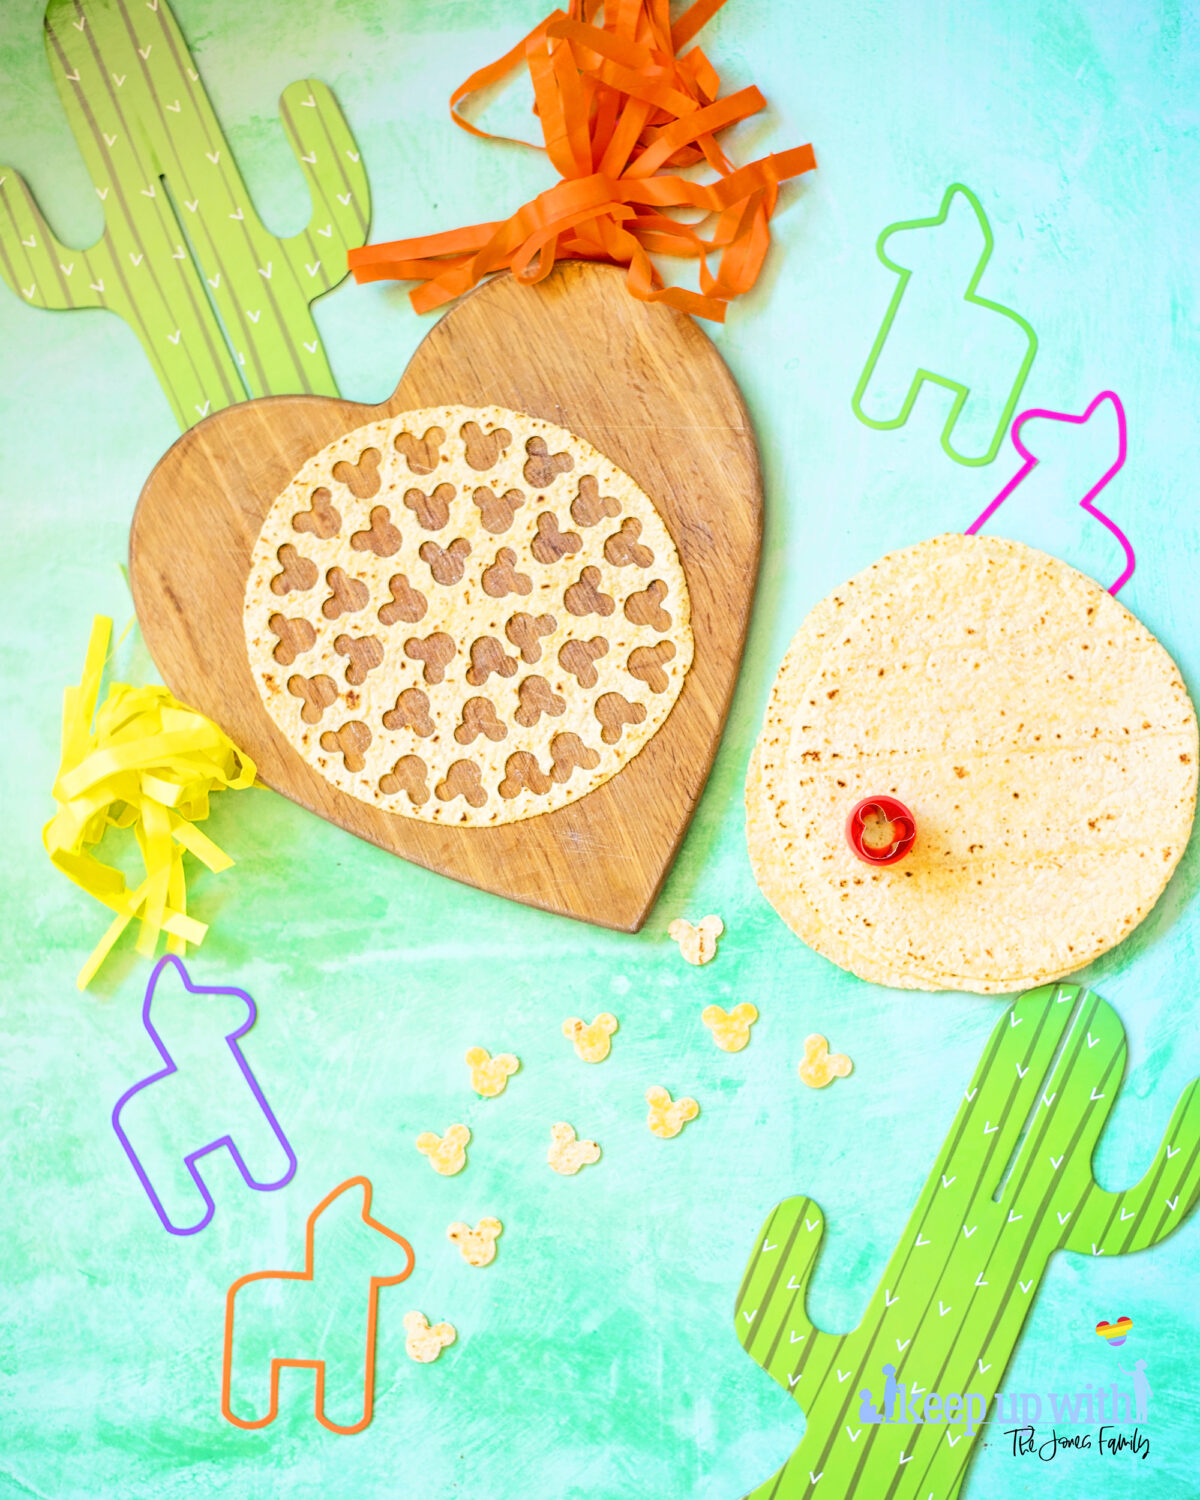 Image shows how to cut nacho chips from a tortilla. There are colourful llama cut outs and cardboard cacti, and a tortilla wrap which has been cut into little Mickey Mouse shaped pieces.  Keep up with the jones family